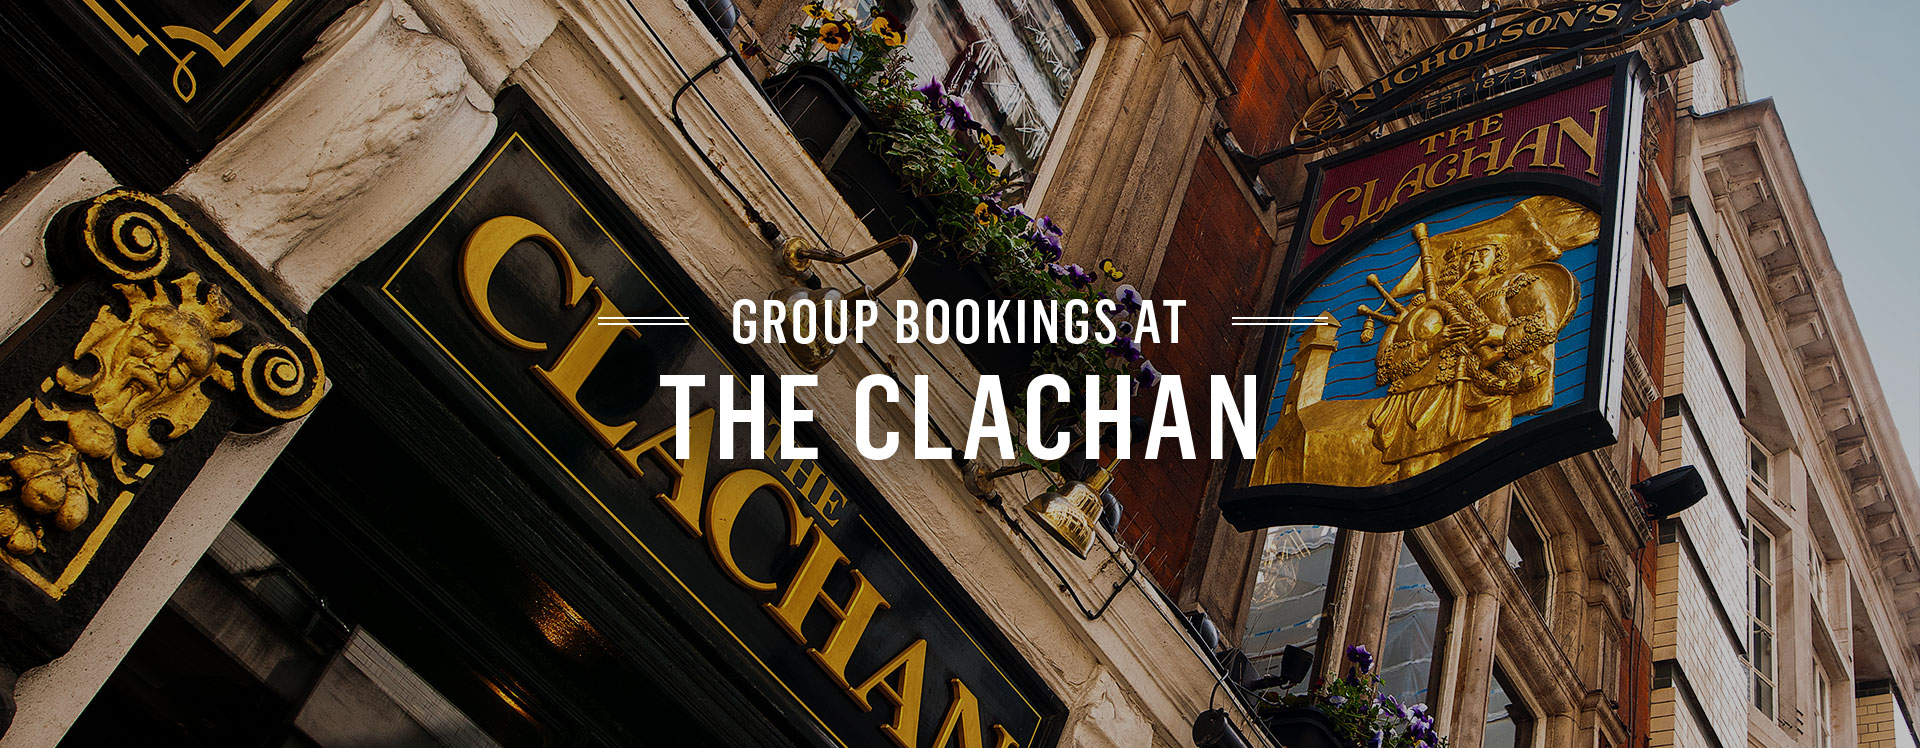 Group Bookings at The Clachan